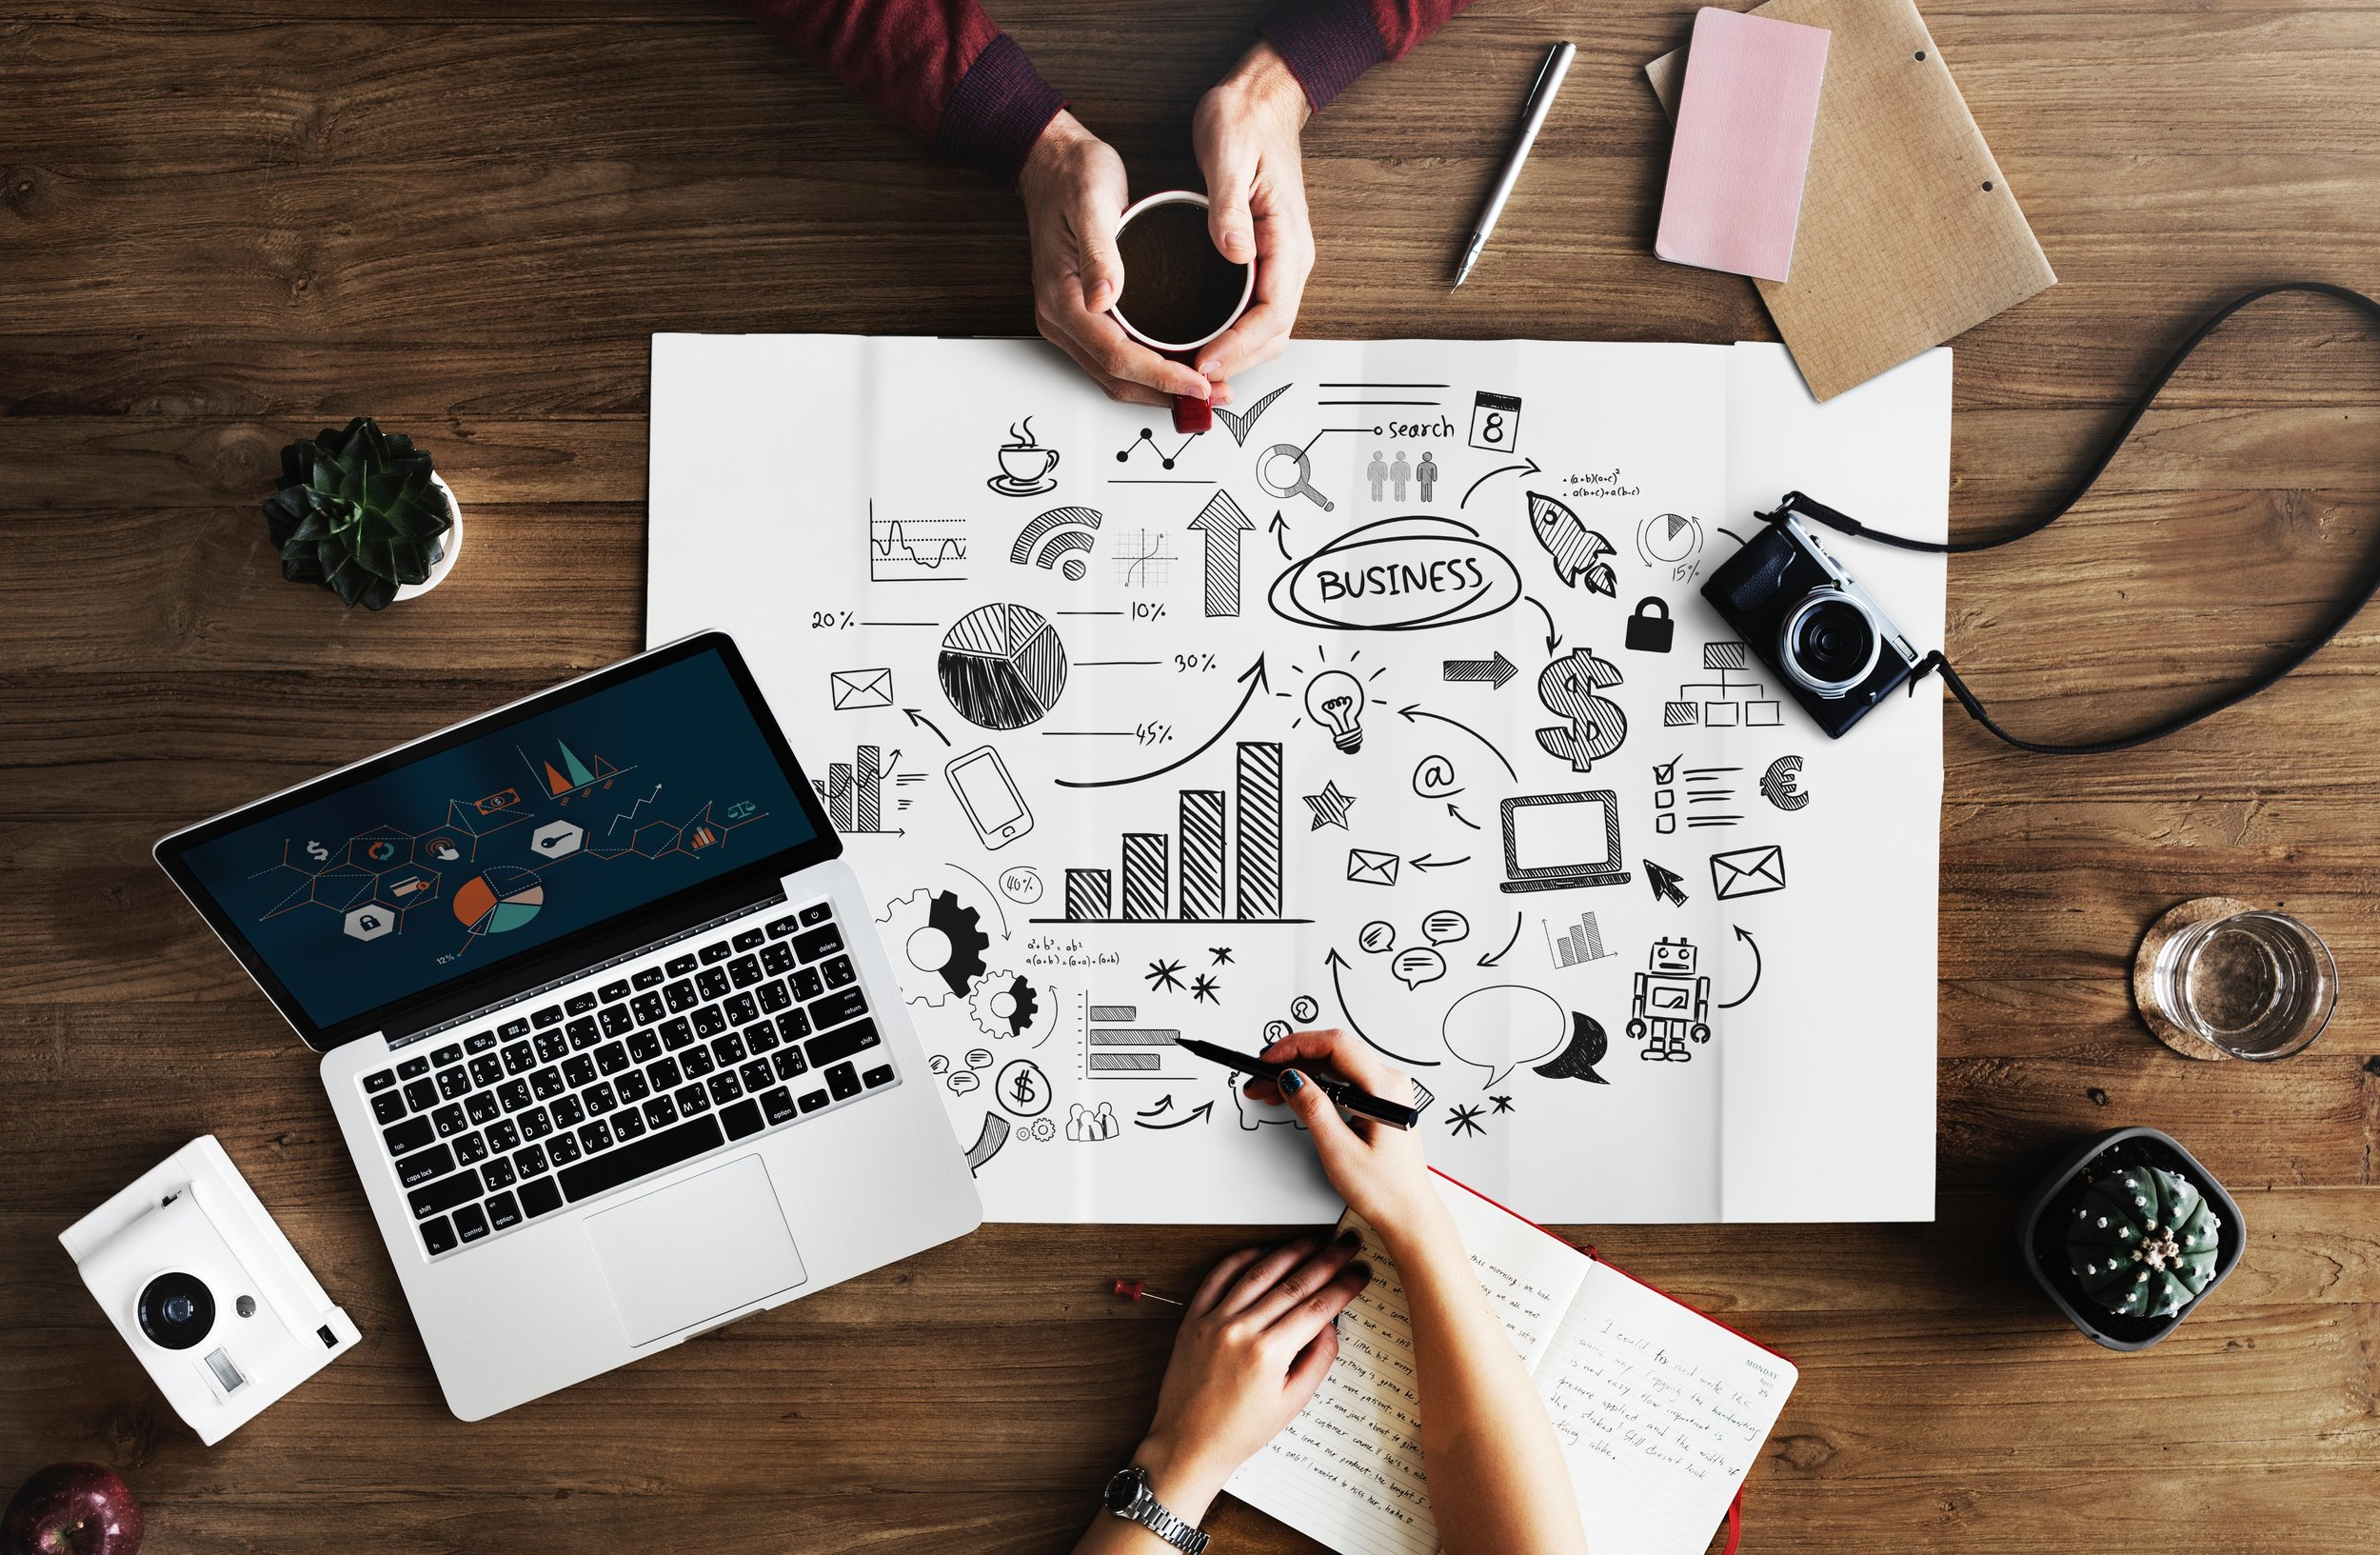 Advanced Diploma in Business with Marketing - Click here for further information on the Advanced Diploma in Business with Marketing course at New Beacon Campus